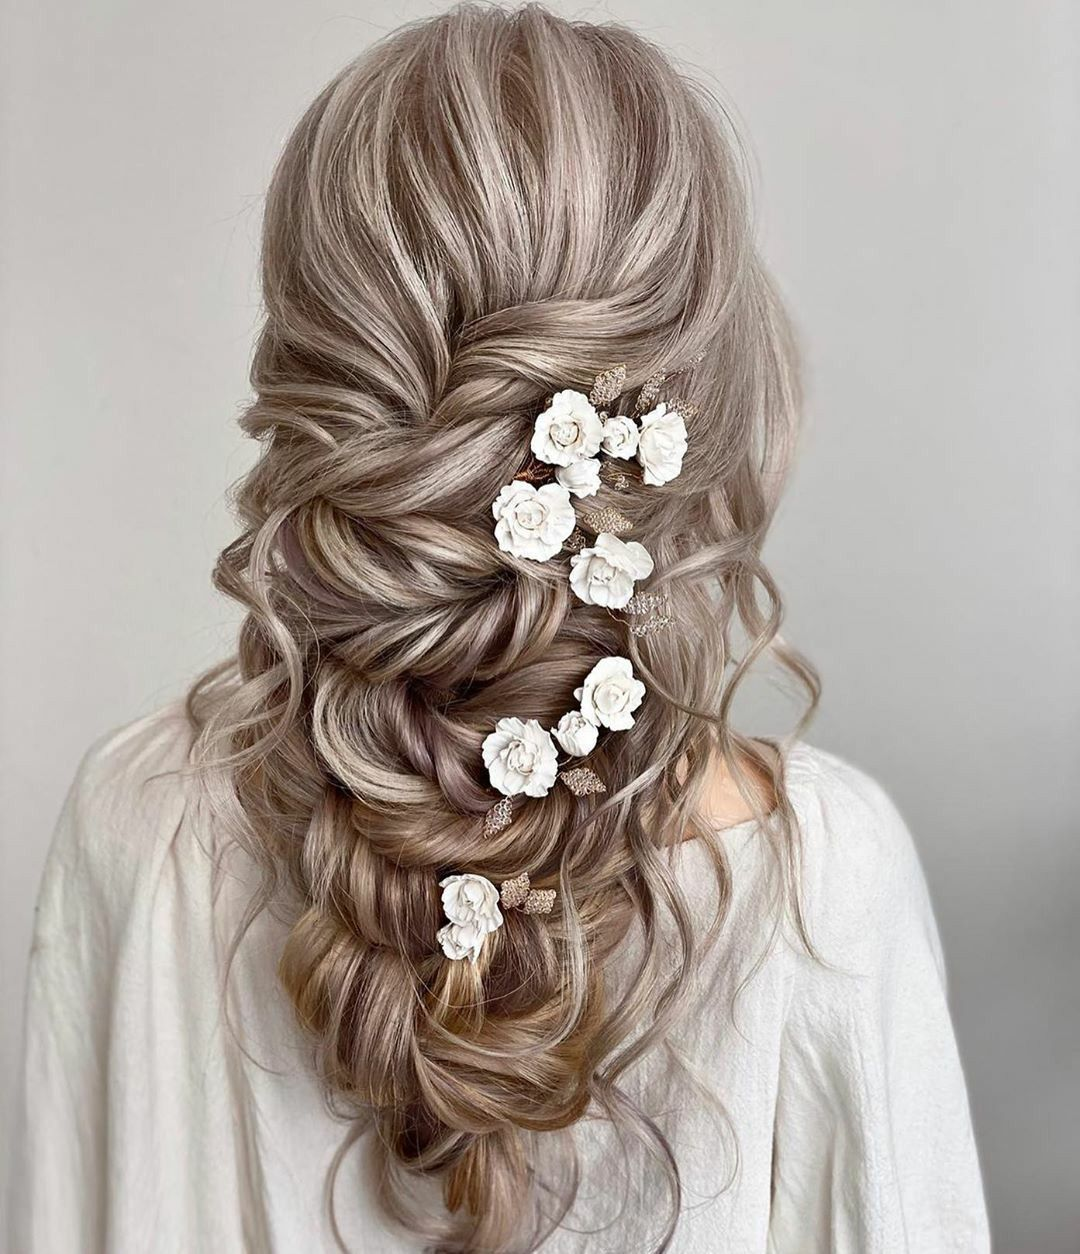 Wedding Hairstyle Ideas 2020 With White Flowers In 2020 Hair Styles Homemade Hair Dye Long Hair Styles